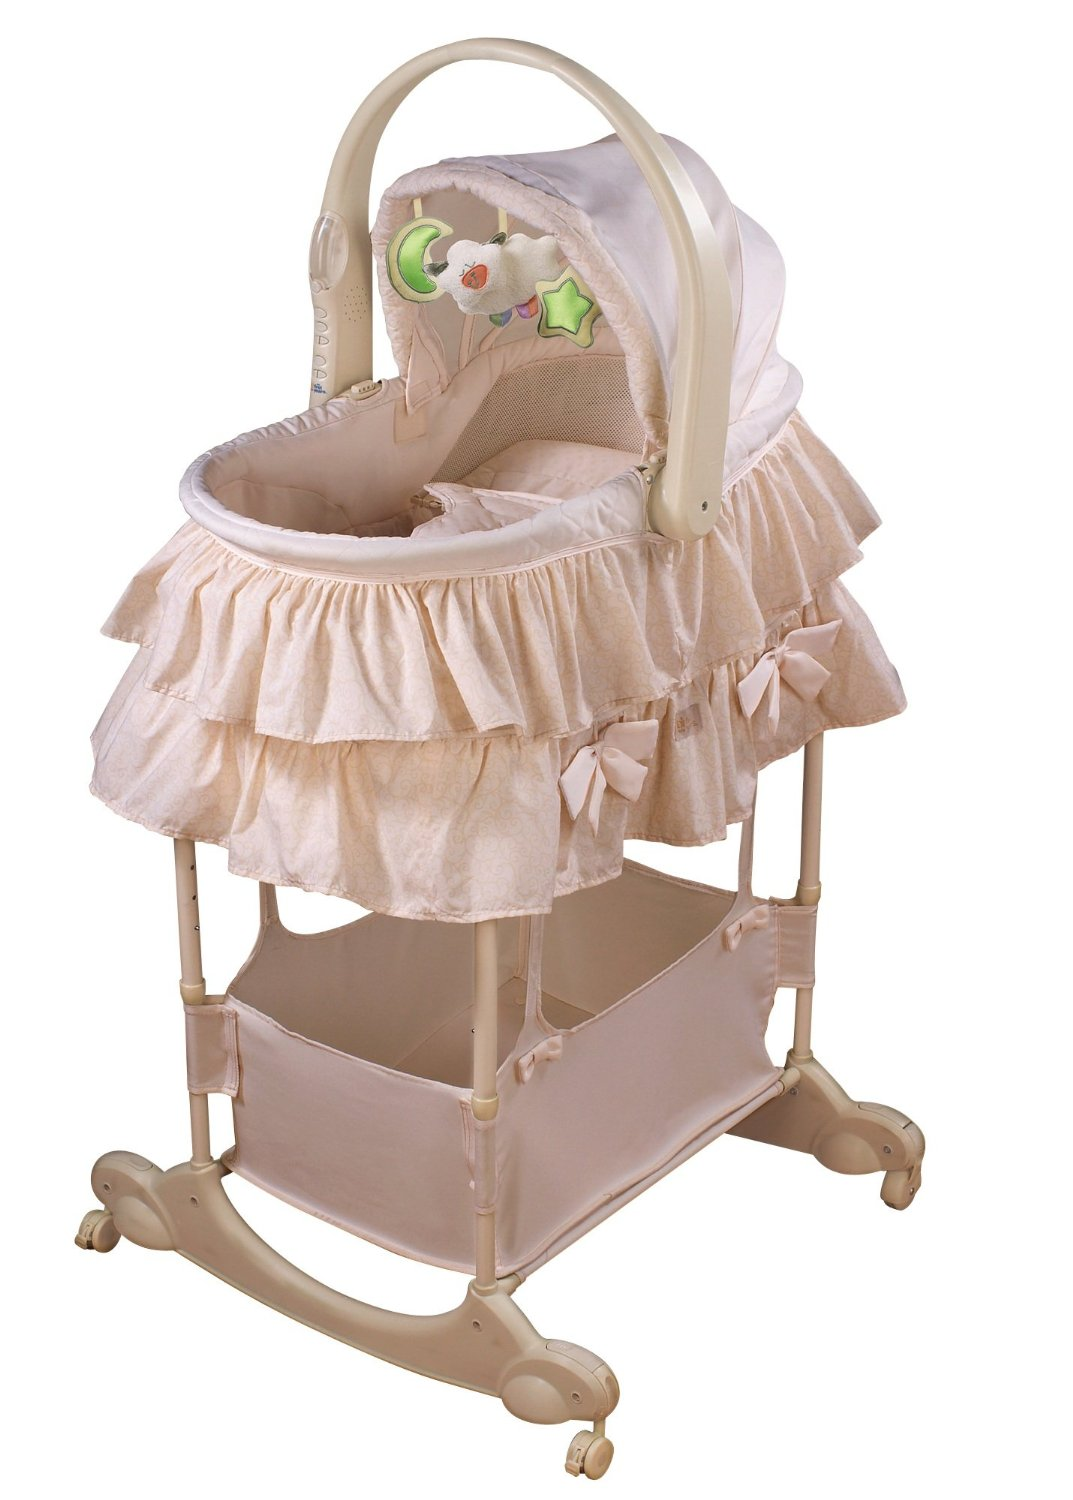 ... New Moms And Moms To Be Out In Their Search For A Safe Bassinet For  Their Upcoming Arrival. Next Post Will Cover Bumper Pads And Safer  Alternatives.